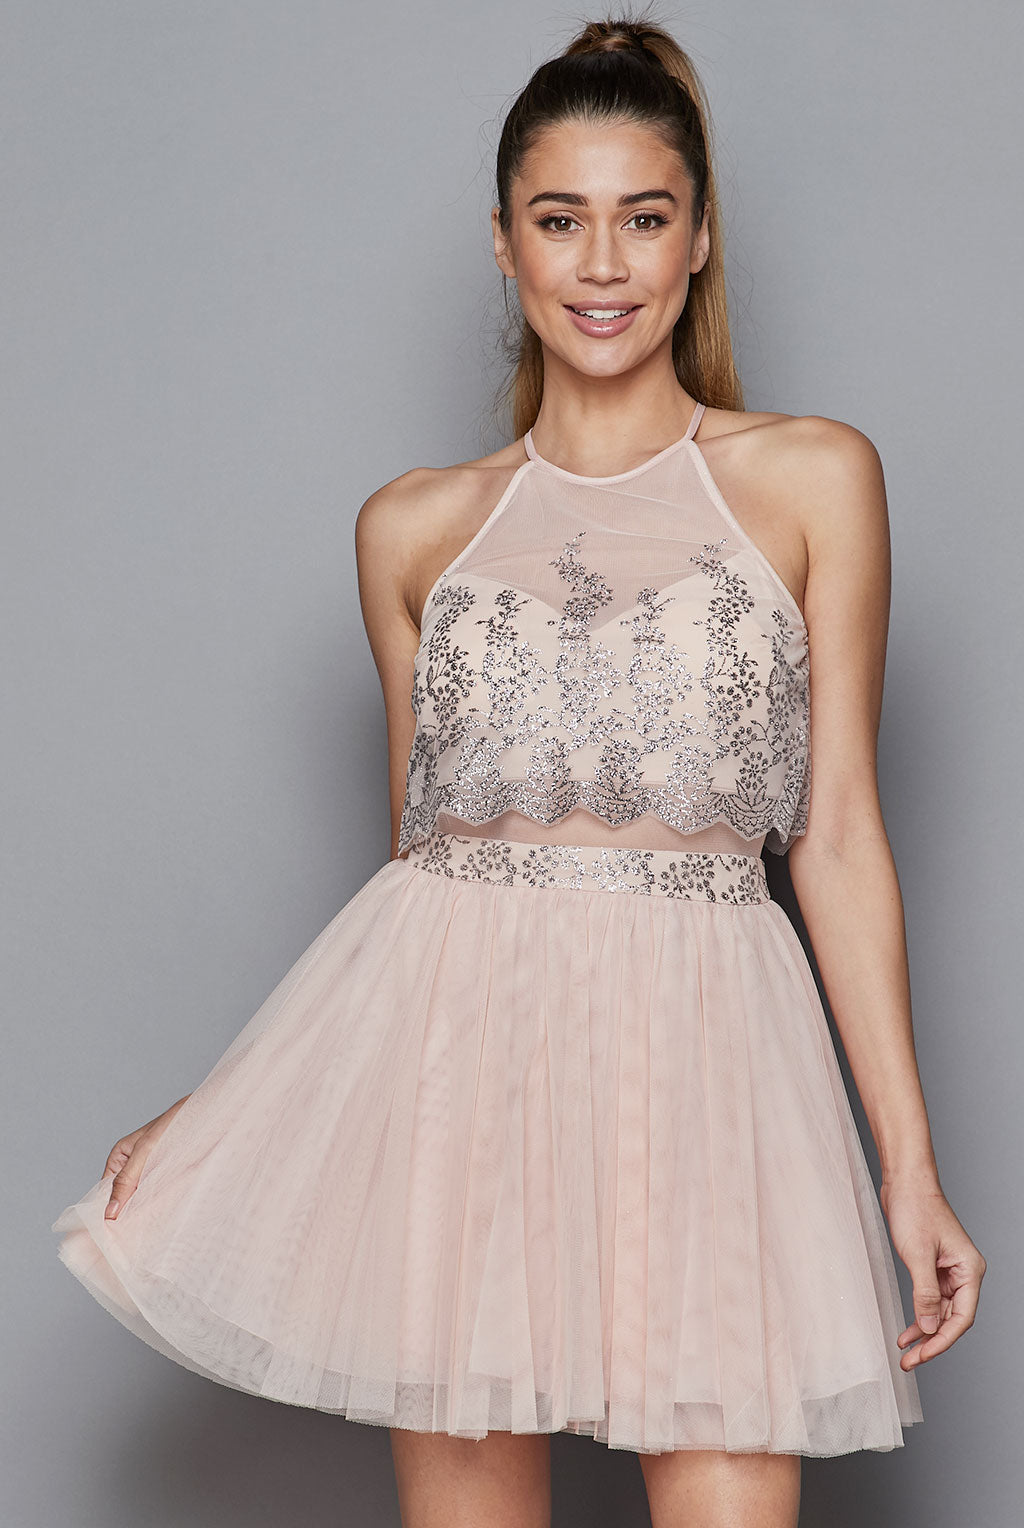 Teeze Me | Halter Glitter Illusion Party Dress | Blush/Silver